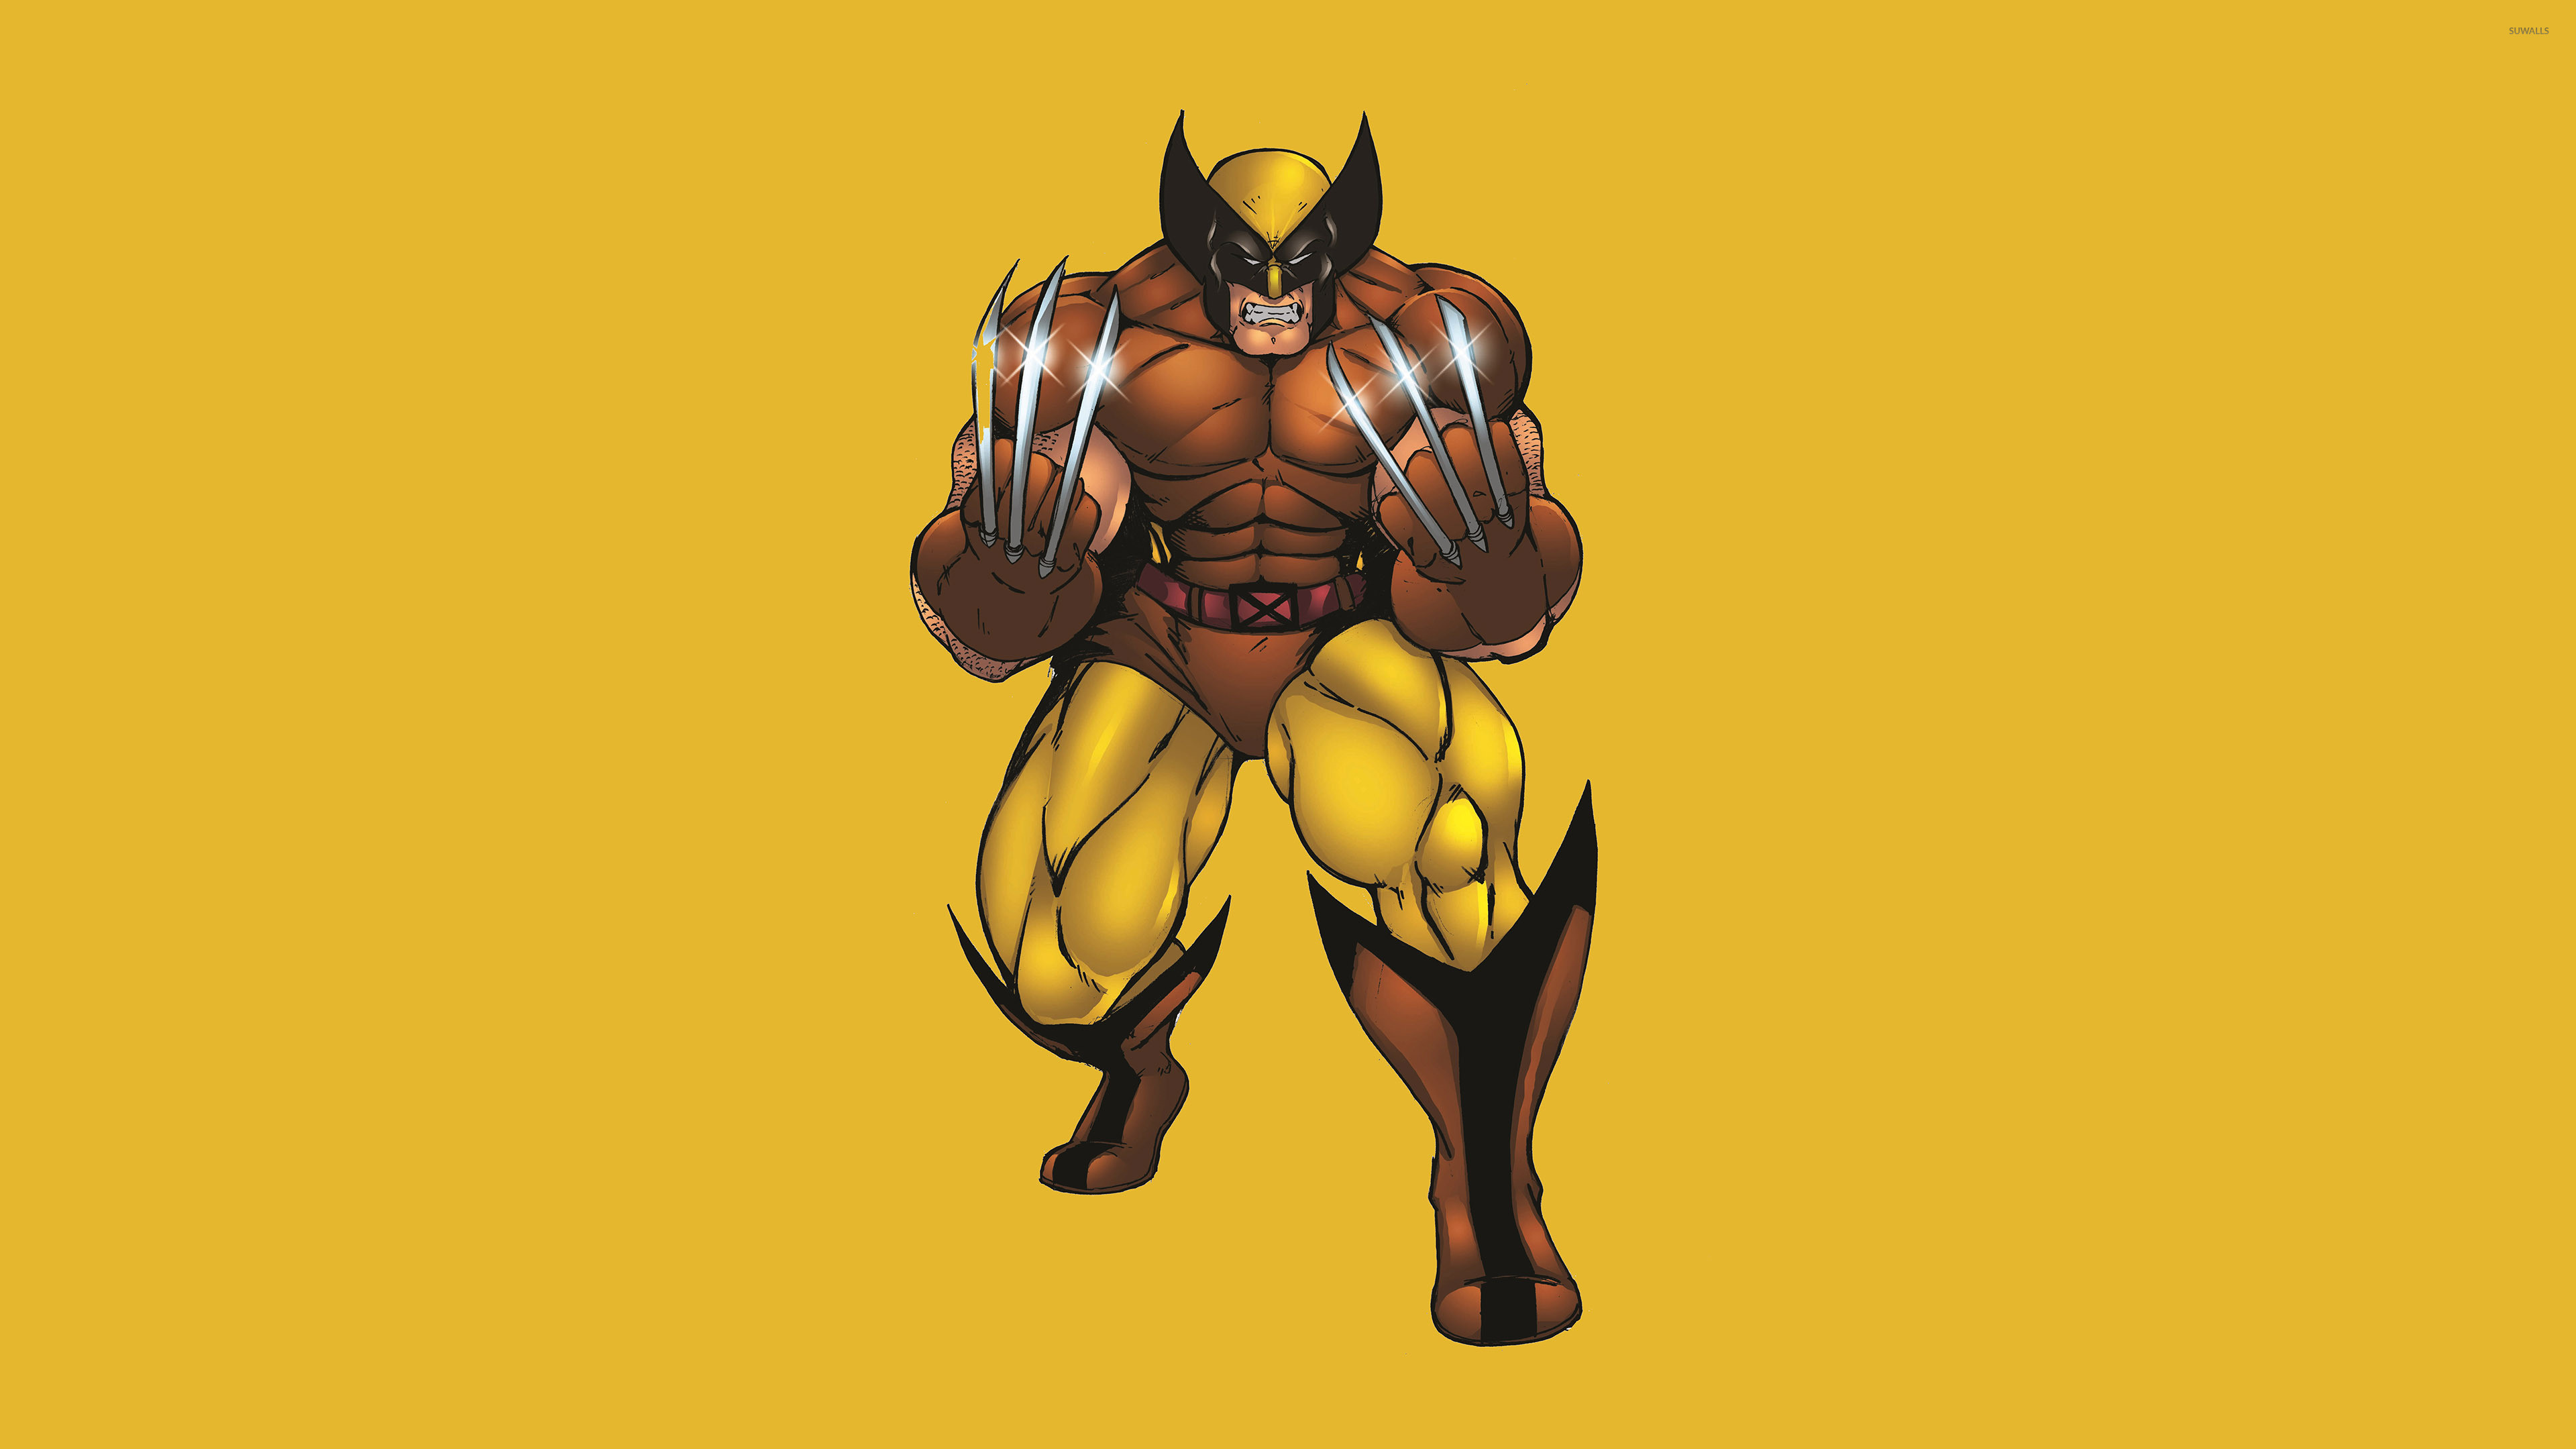 Wolverine with silver claws wallpaper jpg